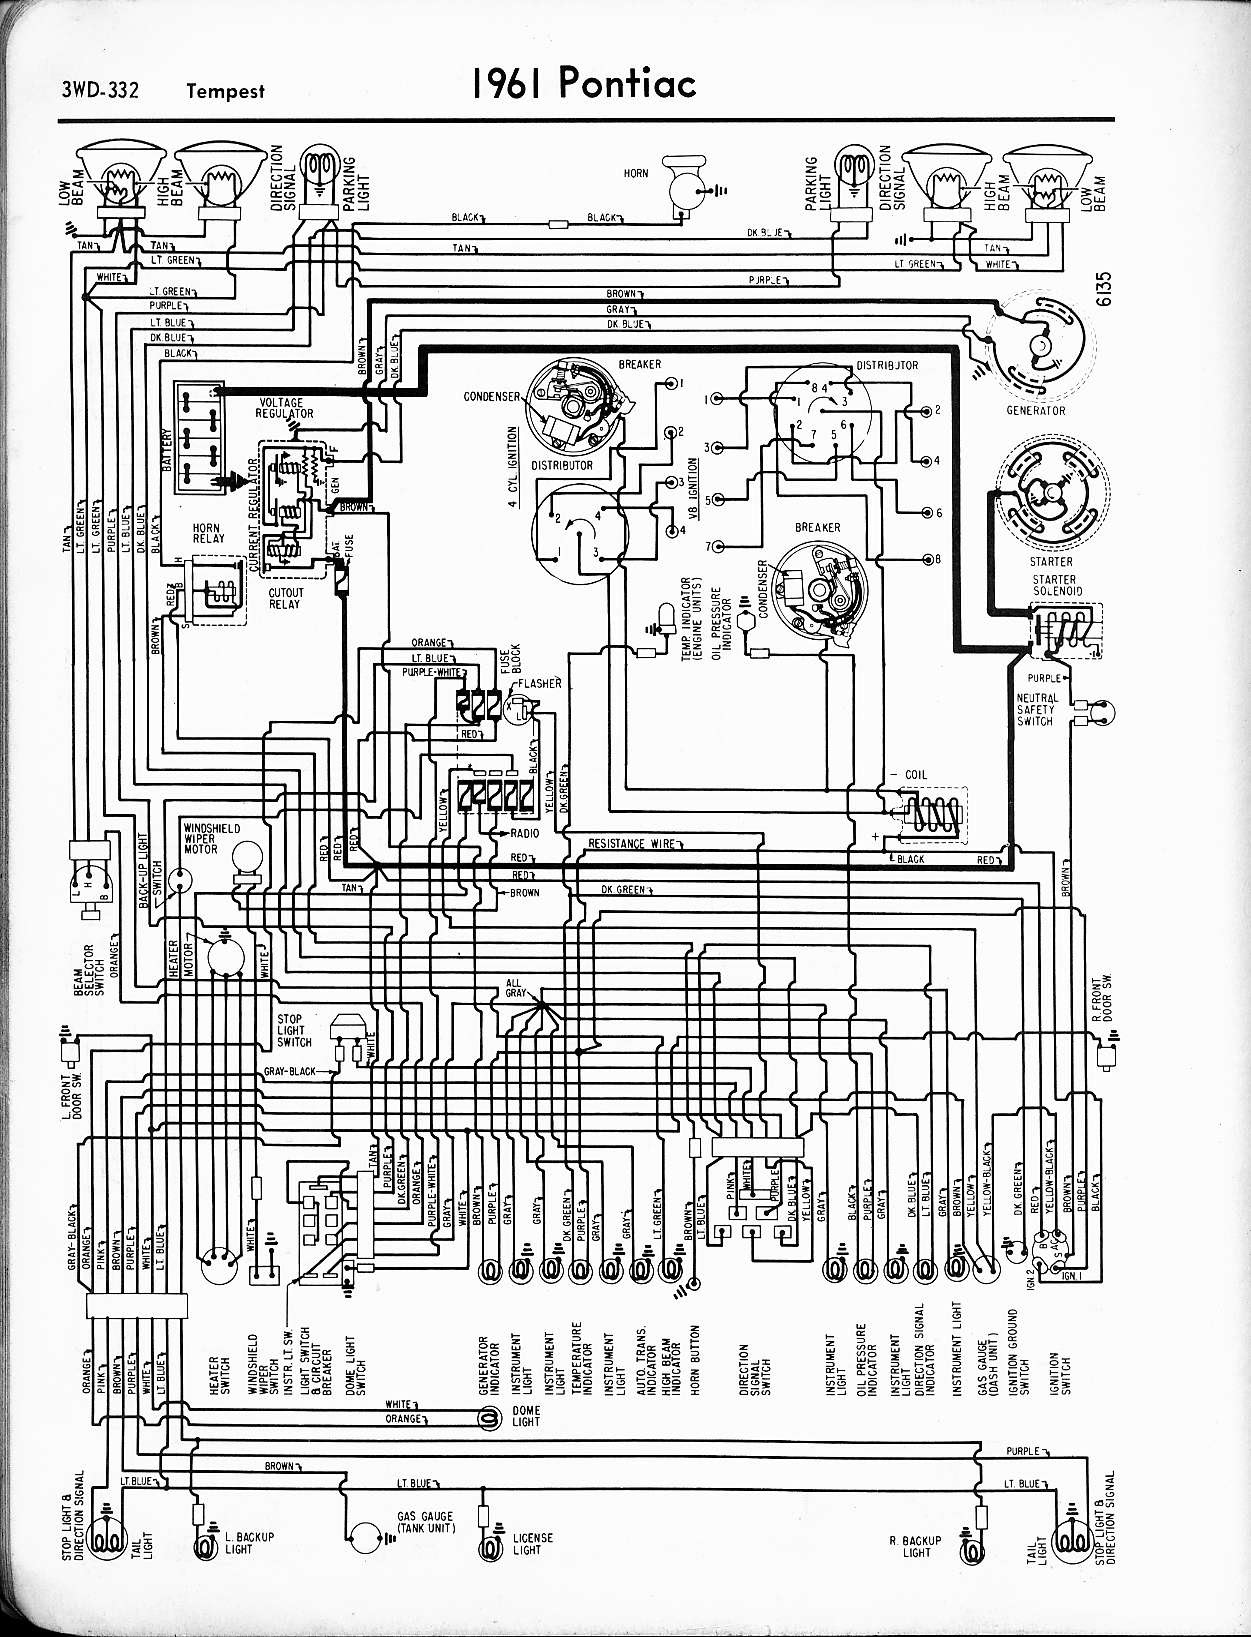 66 Pontiac Gto Wiring Diagram Wiring Diagram Workstation Workstation Pasticceriagele It